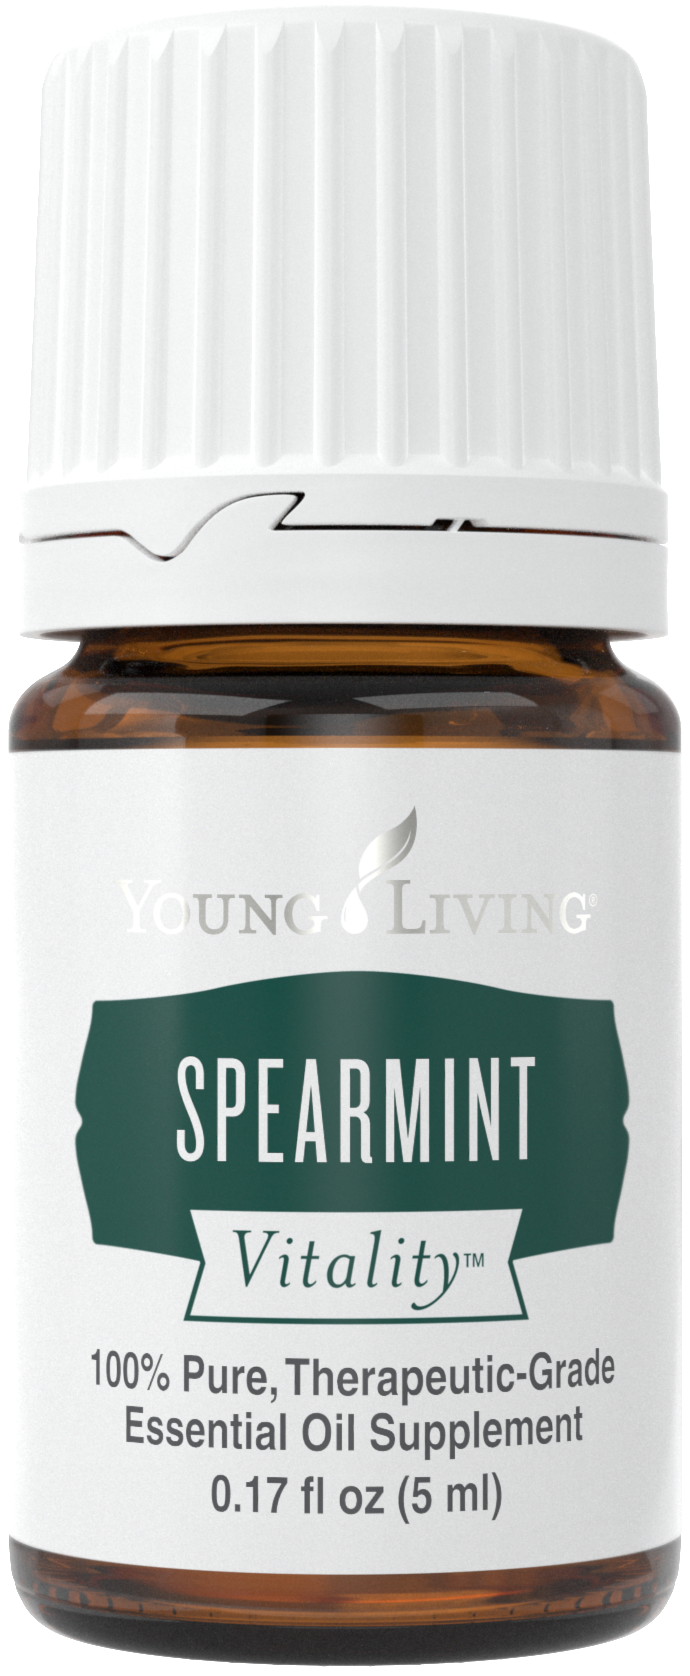 Spearmint Vitality Essential Oil by Young Living